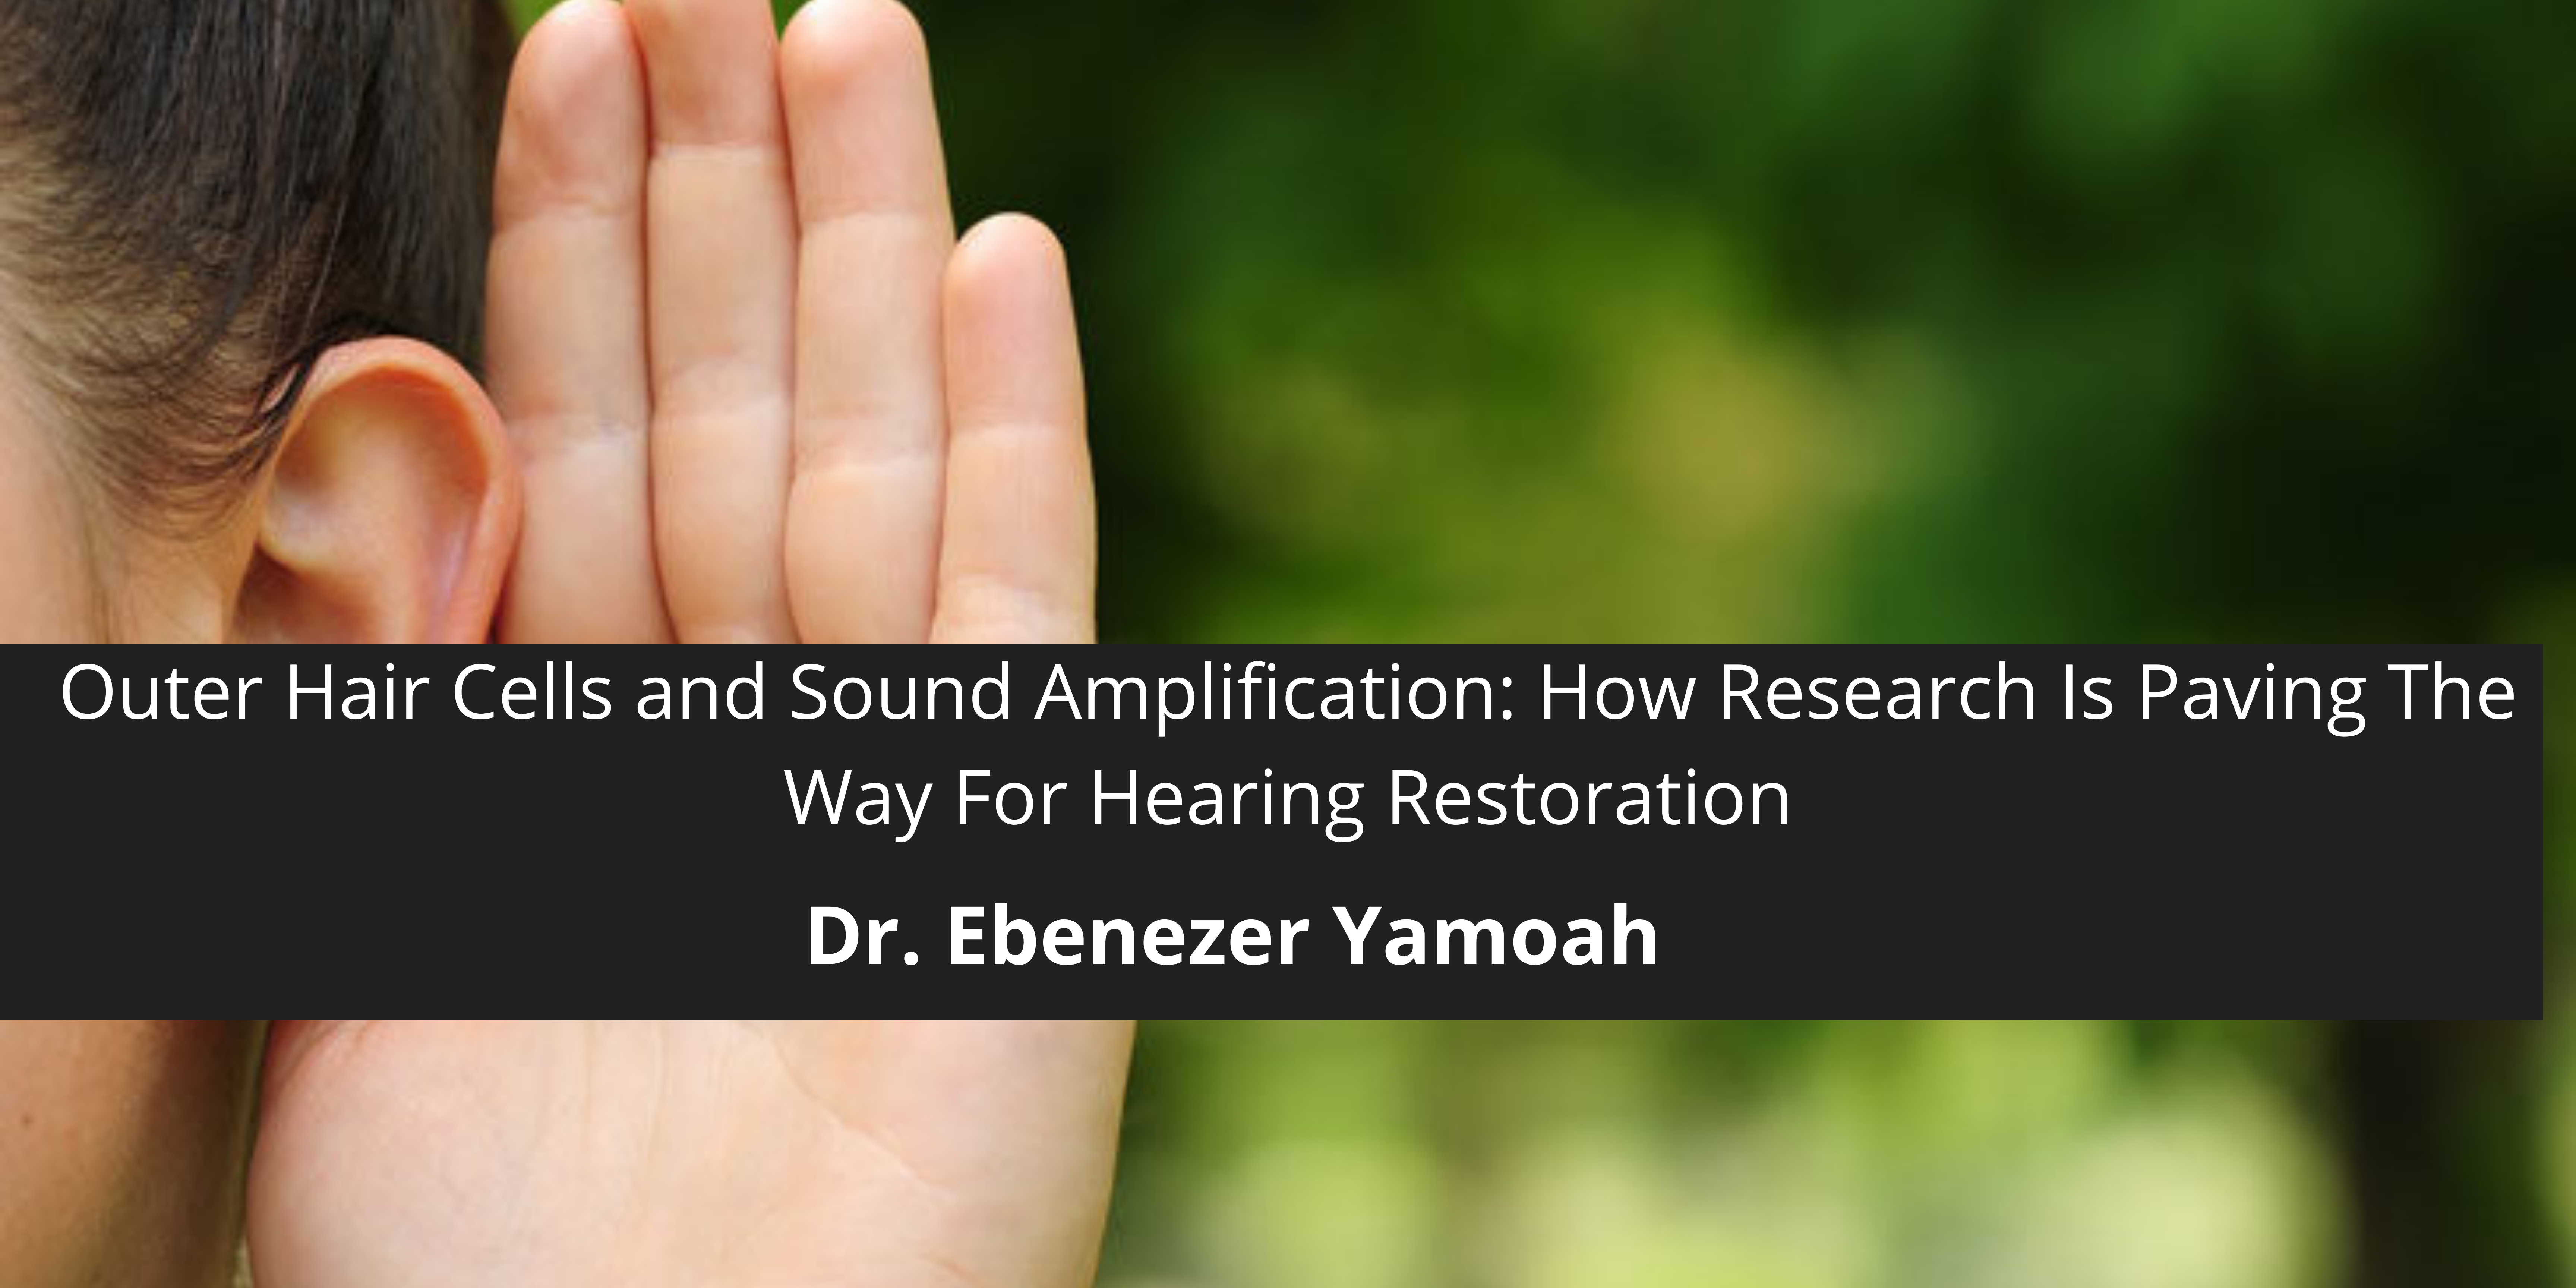 Outer Hair Cells and Sound Amplification: How Dr. Ebenezer Yamoah's Research Is Paving The Way For Hearing Restoration